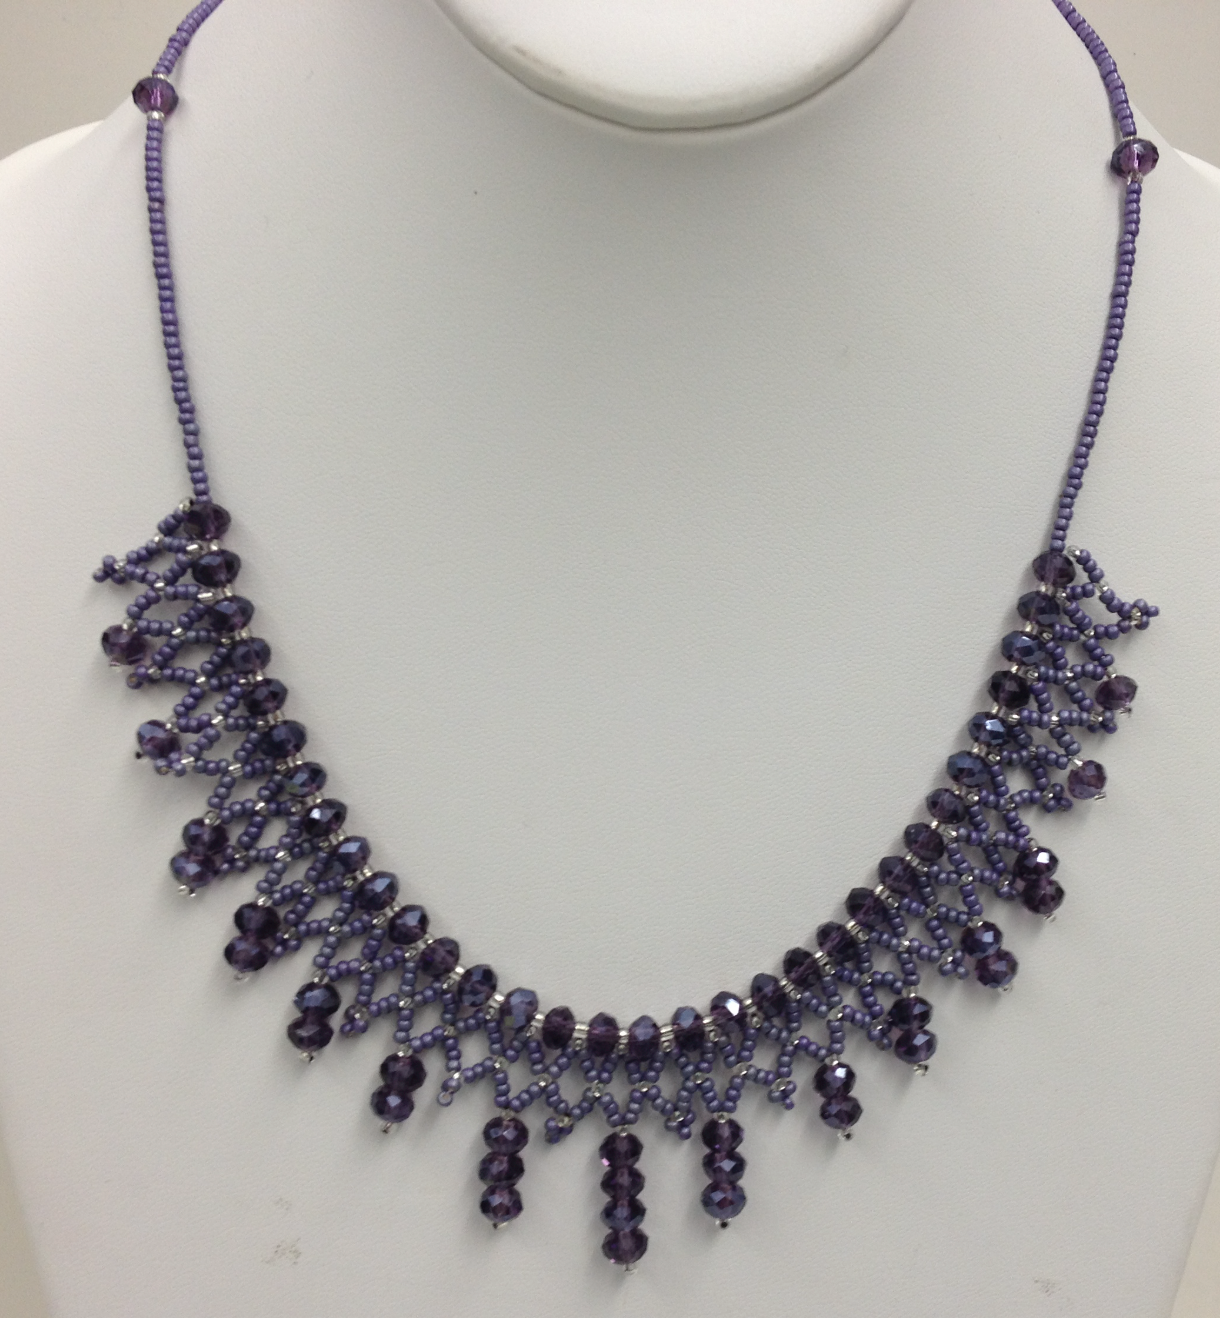 Crystal Lace Necklace purples by Paula Binner_edited.JPG